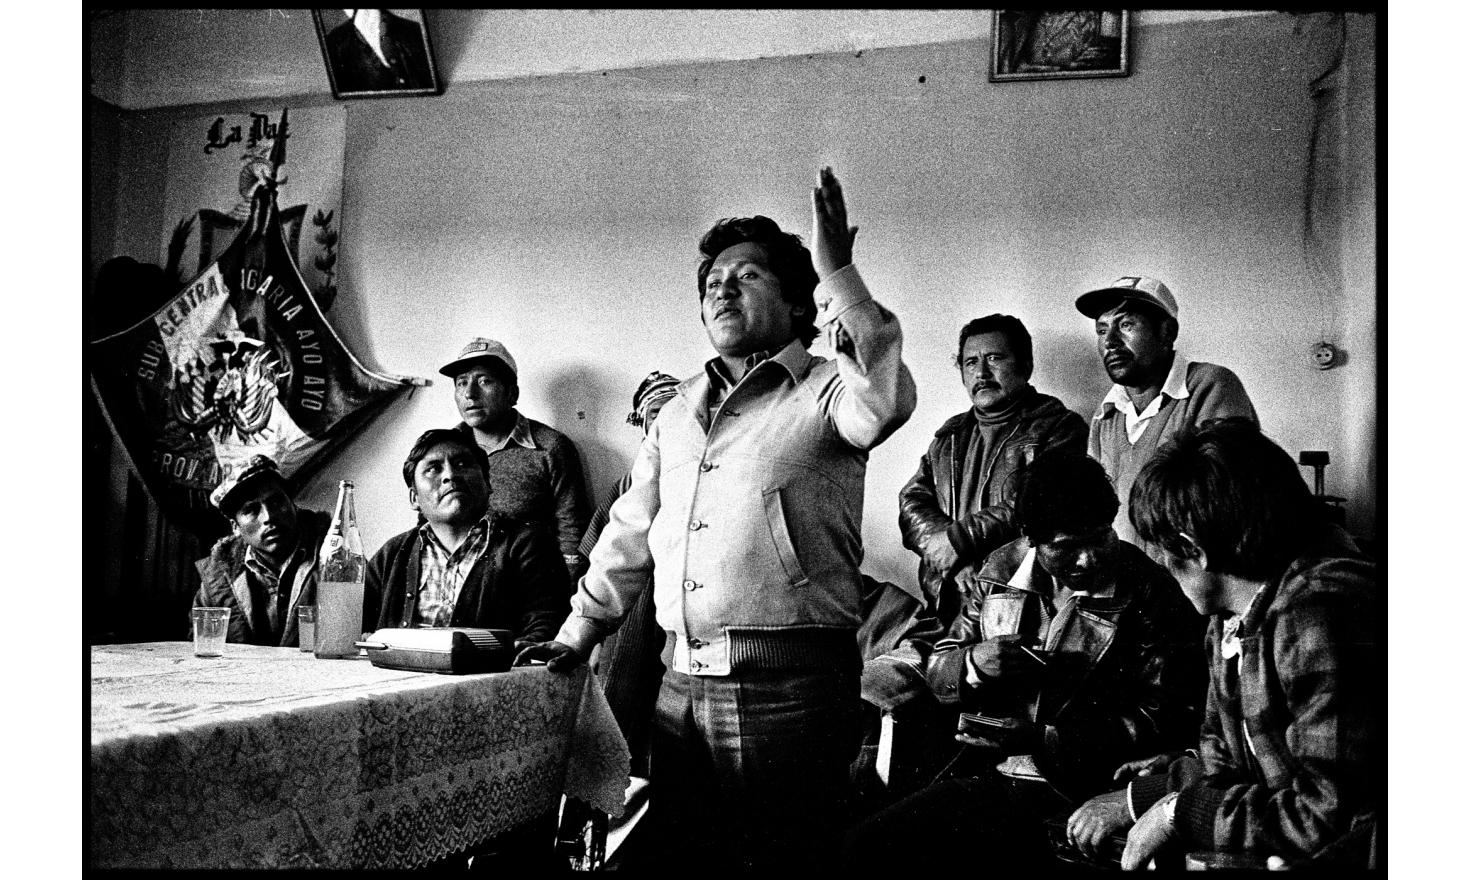 Peasants Day. Ahead of the leader of the peasant union, a union member makes a speech to mark the 201 anniversary of the death of the leader of the rebellion against Spain Tupac Katari. Ayo Ayo, Bolivia. November 15, 1982